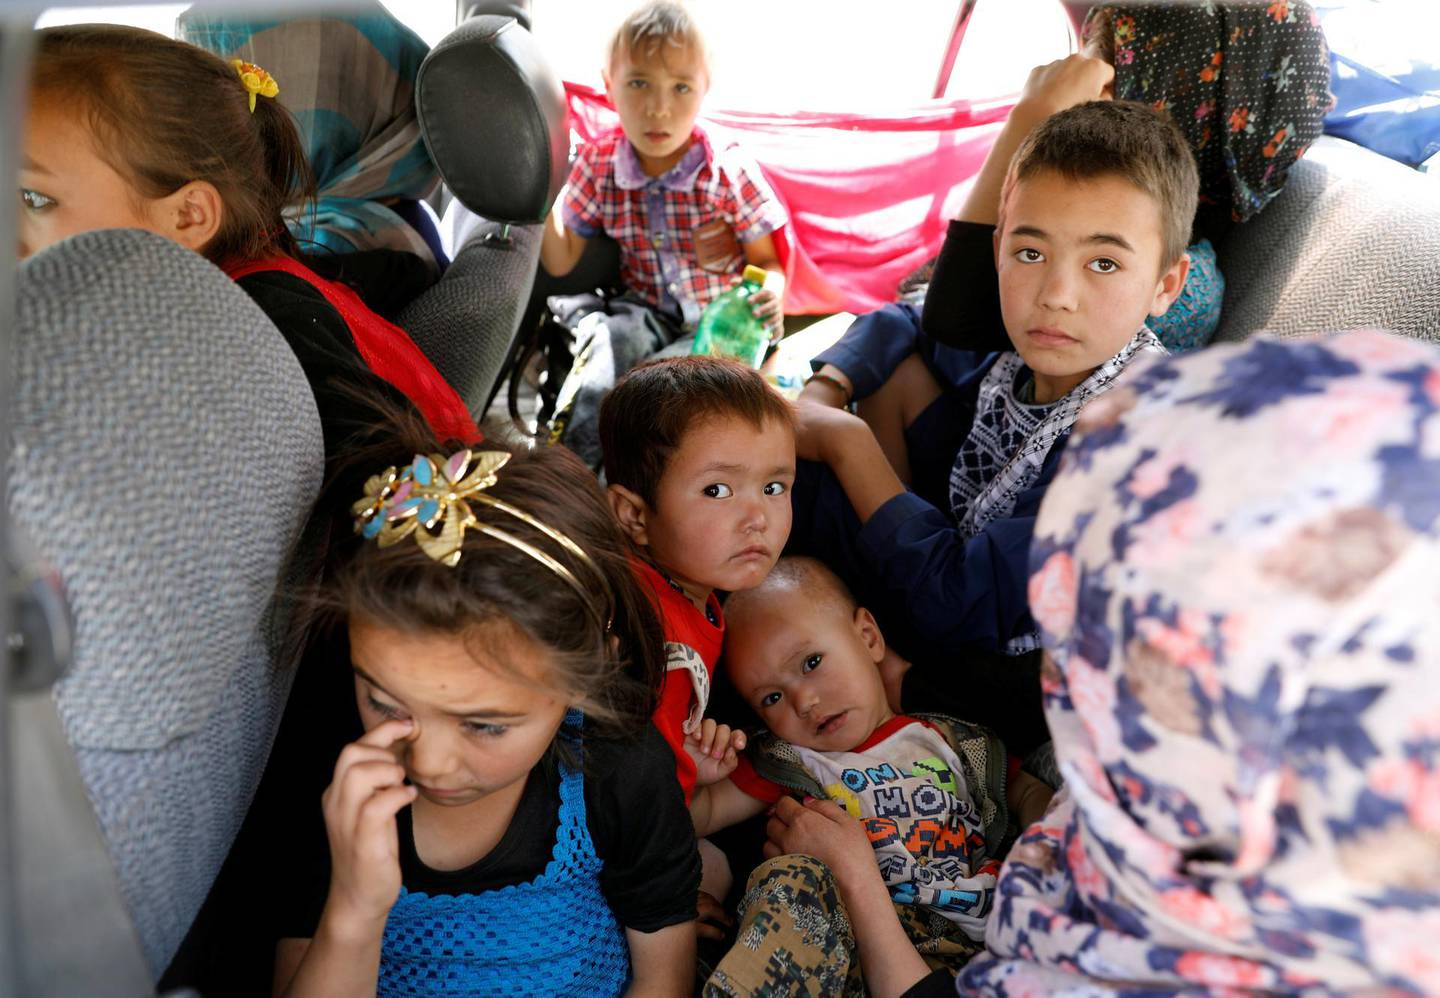 Afghan children ride in a vehicle as they flee their houses following heavy fighting in Ghazni Province, on the Ghazni - Kabul highway, Afghanistan August 14, 2018.REUTERS/Mohammad Ismail